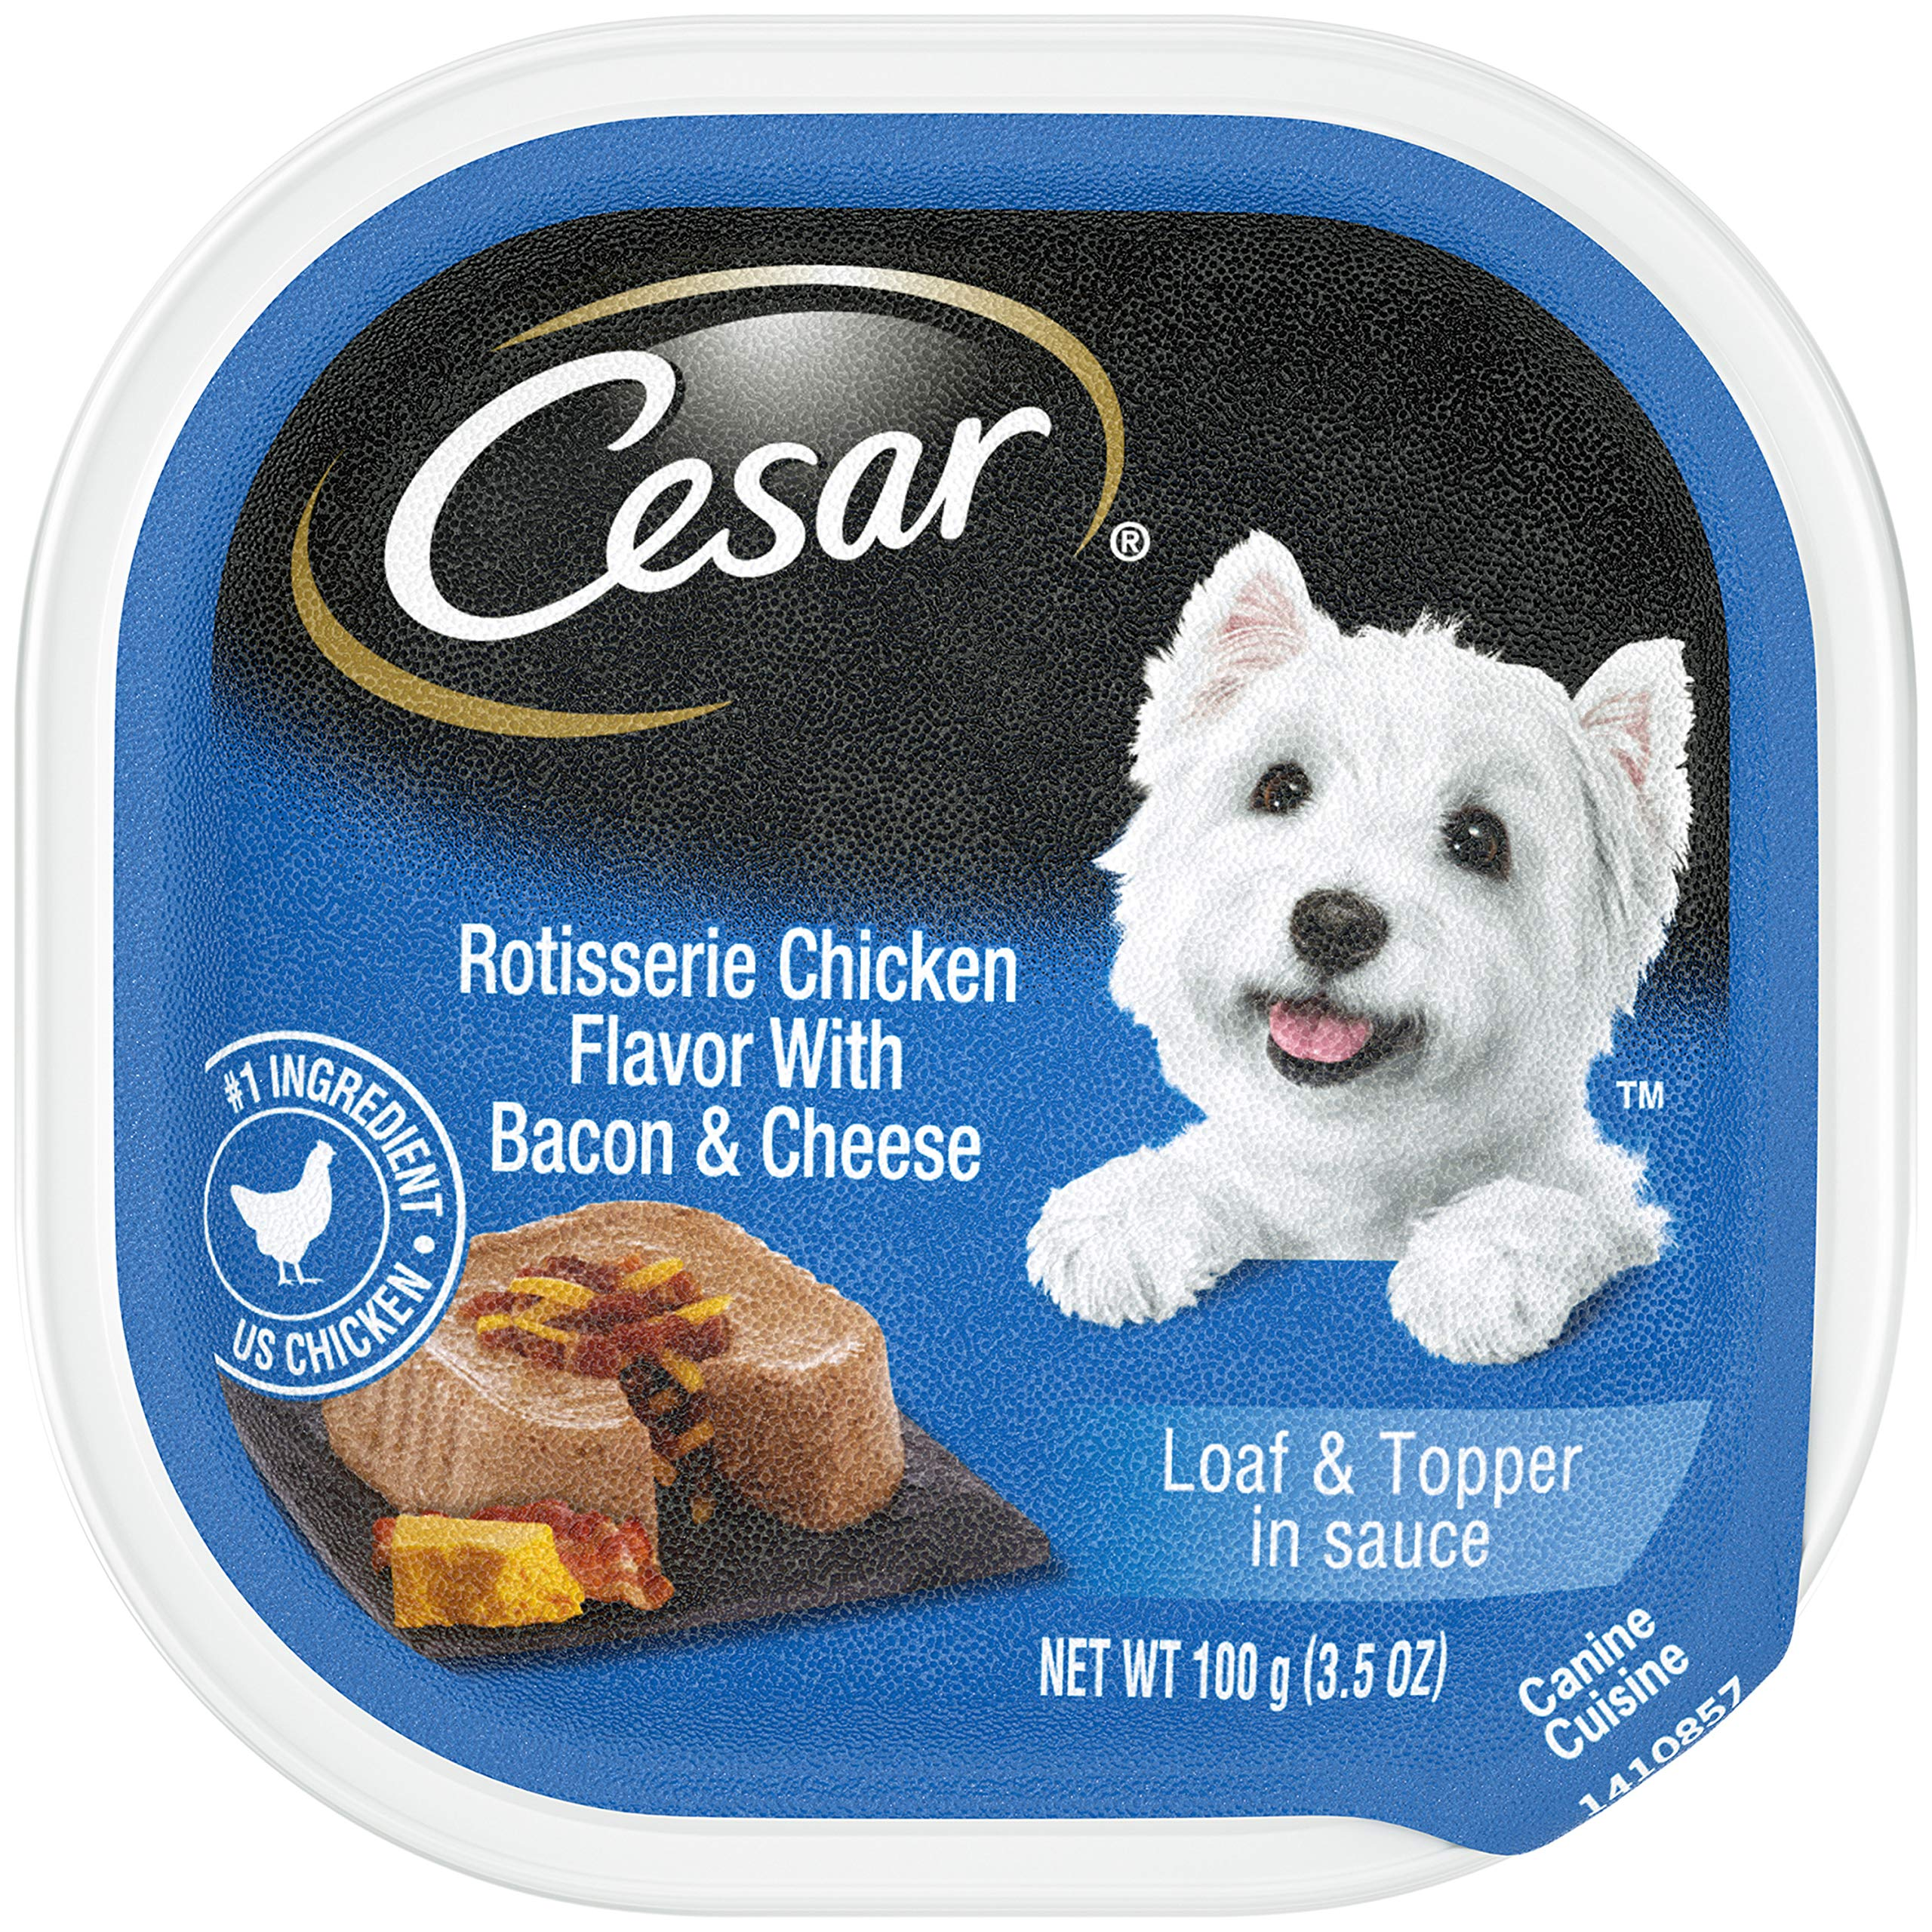 CESAR Soft Wet Dog Food Loaf & Topper in Sauce Rotisserie Chicken Flavor with Bacon & Cheese, (24) 3.5 oz. Easy Peel Trays by Cesar